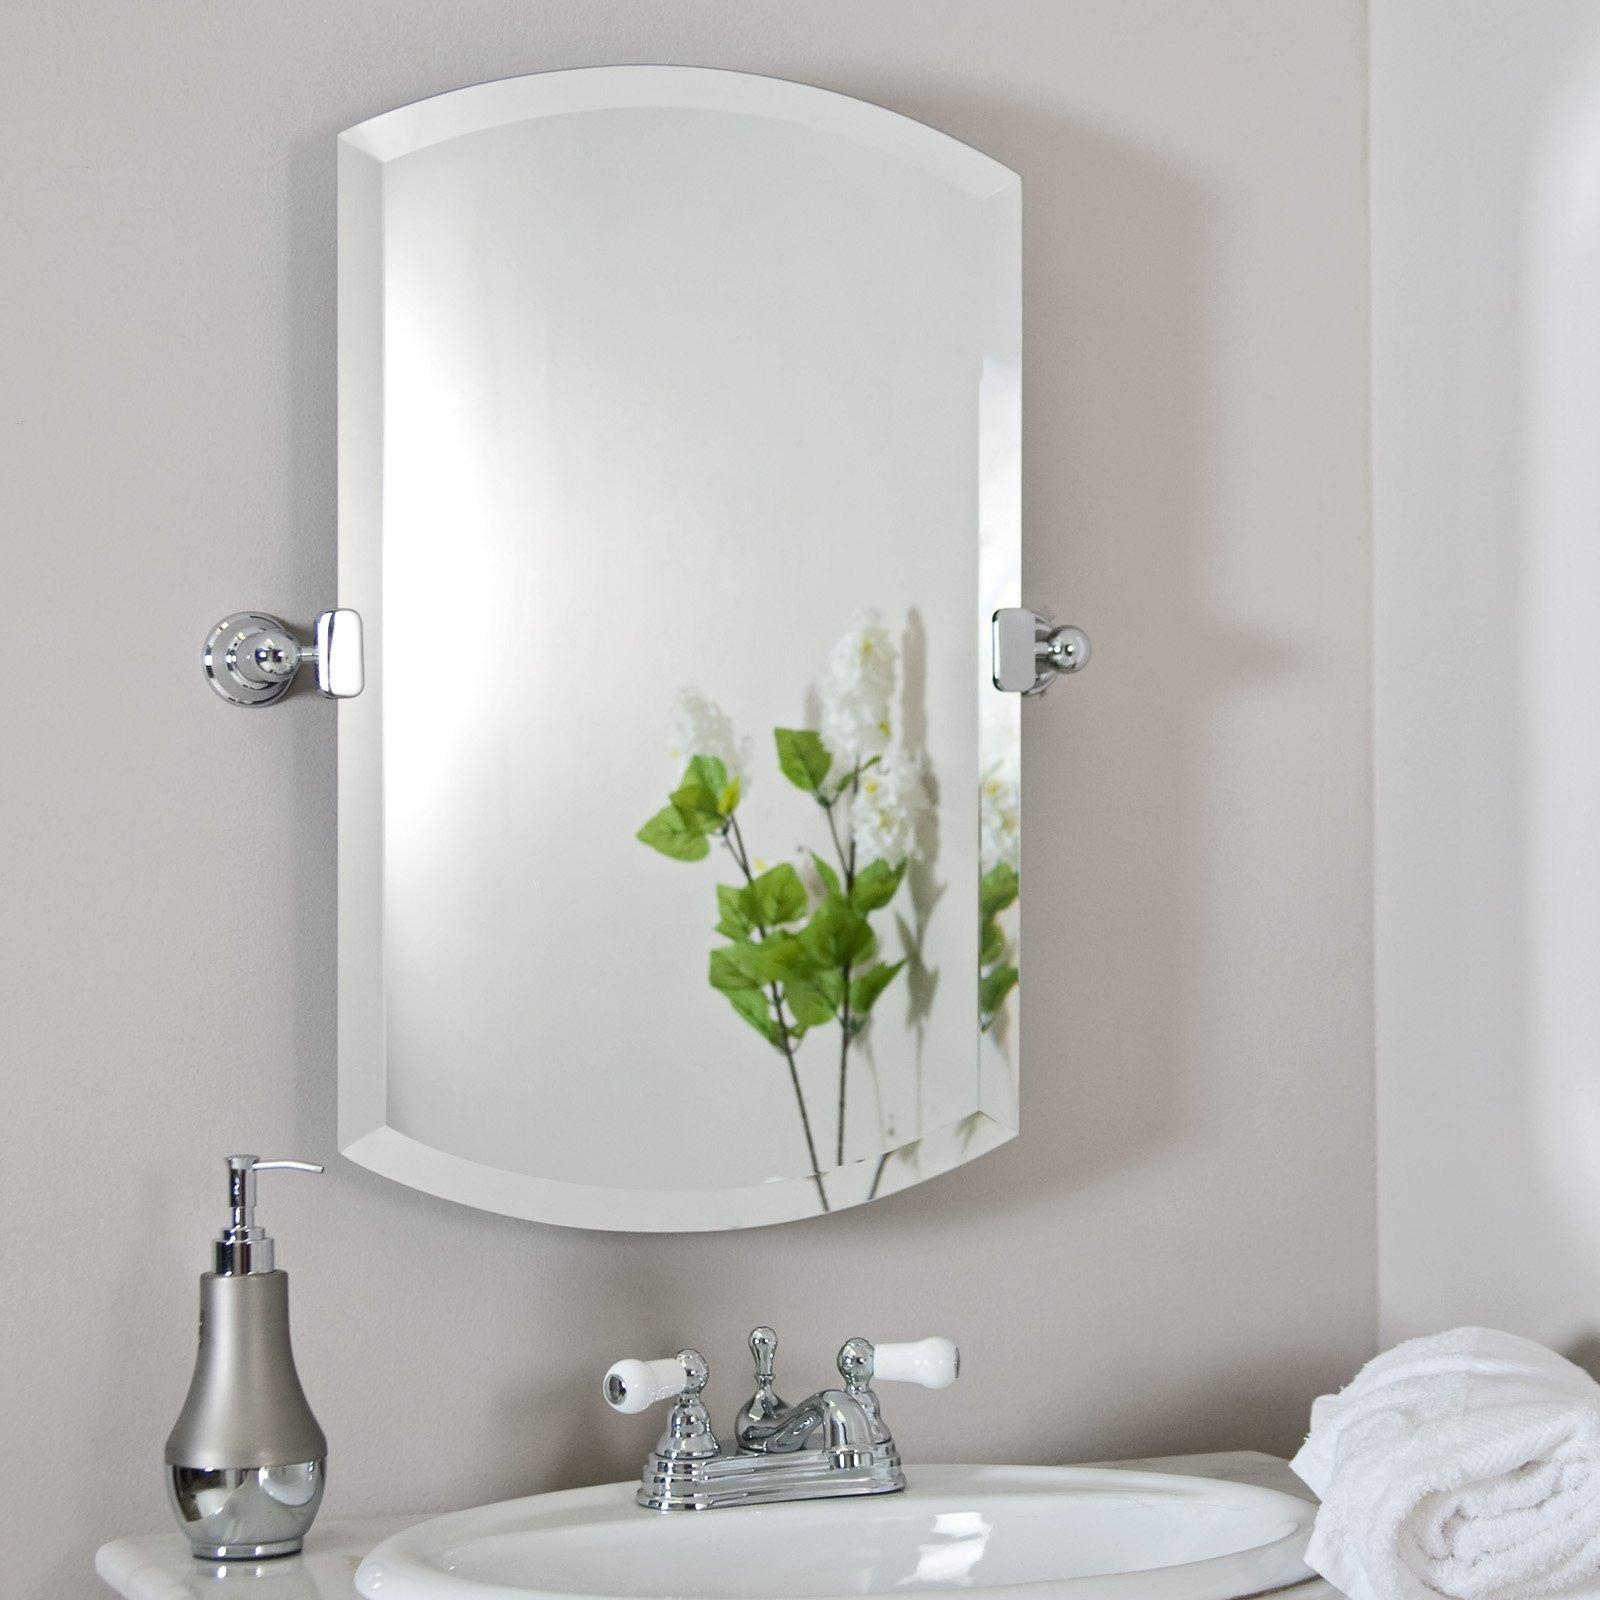 Mirrors Small: 20 Photos Small Free Standing Mirror